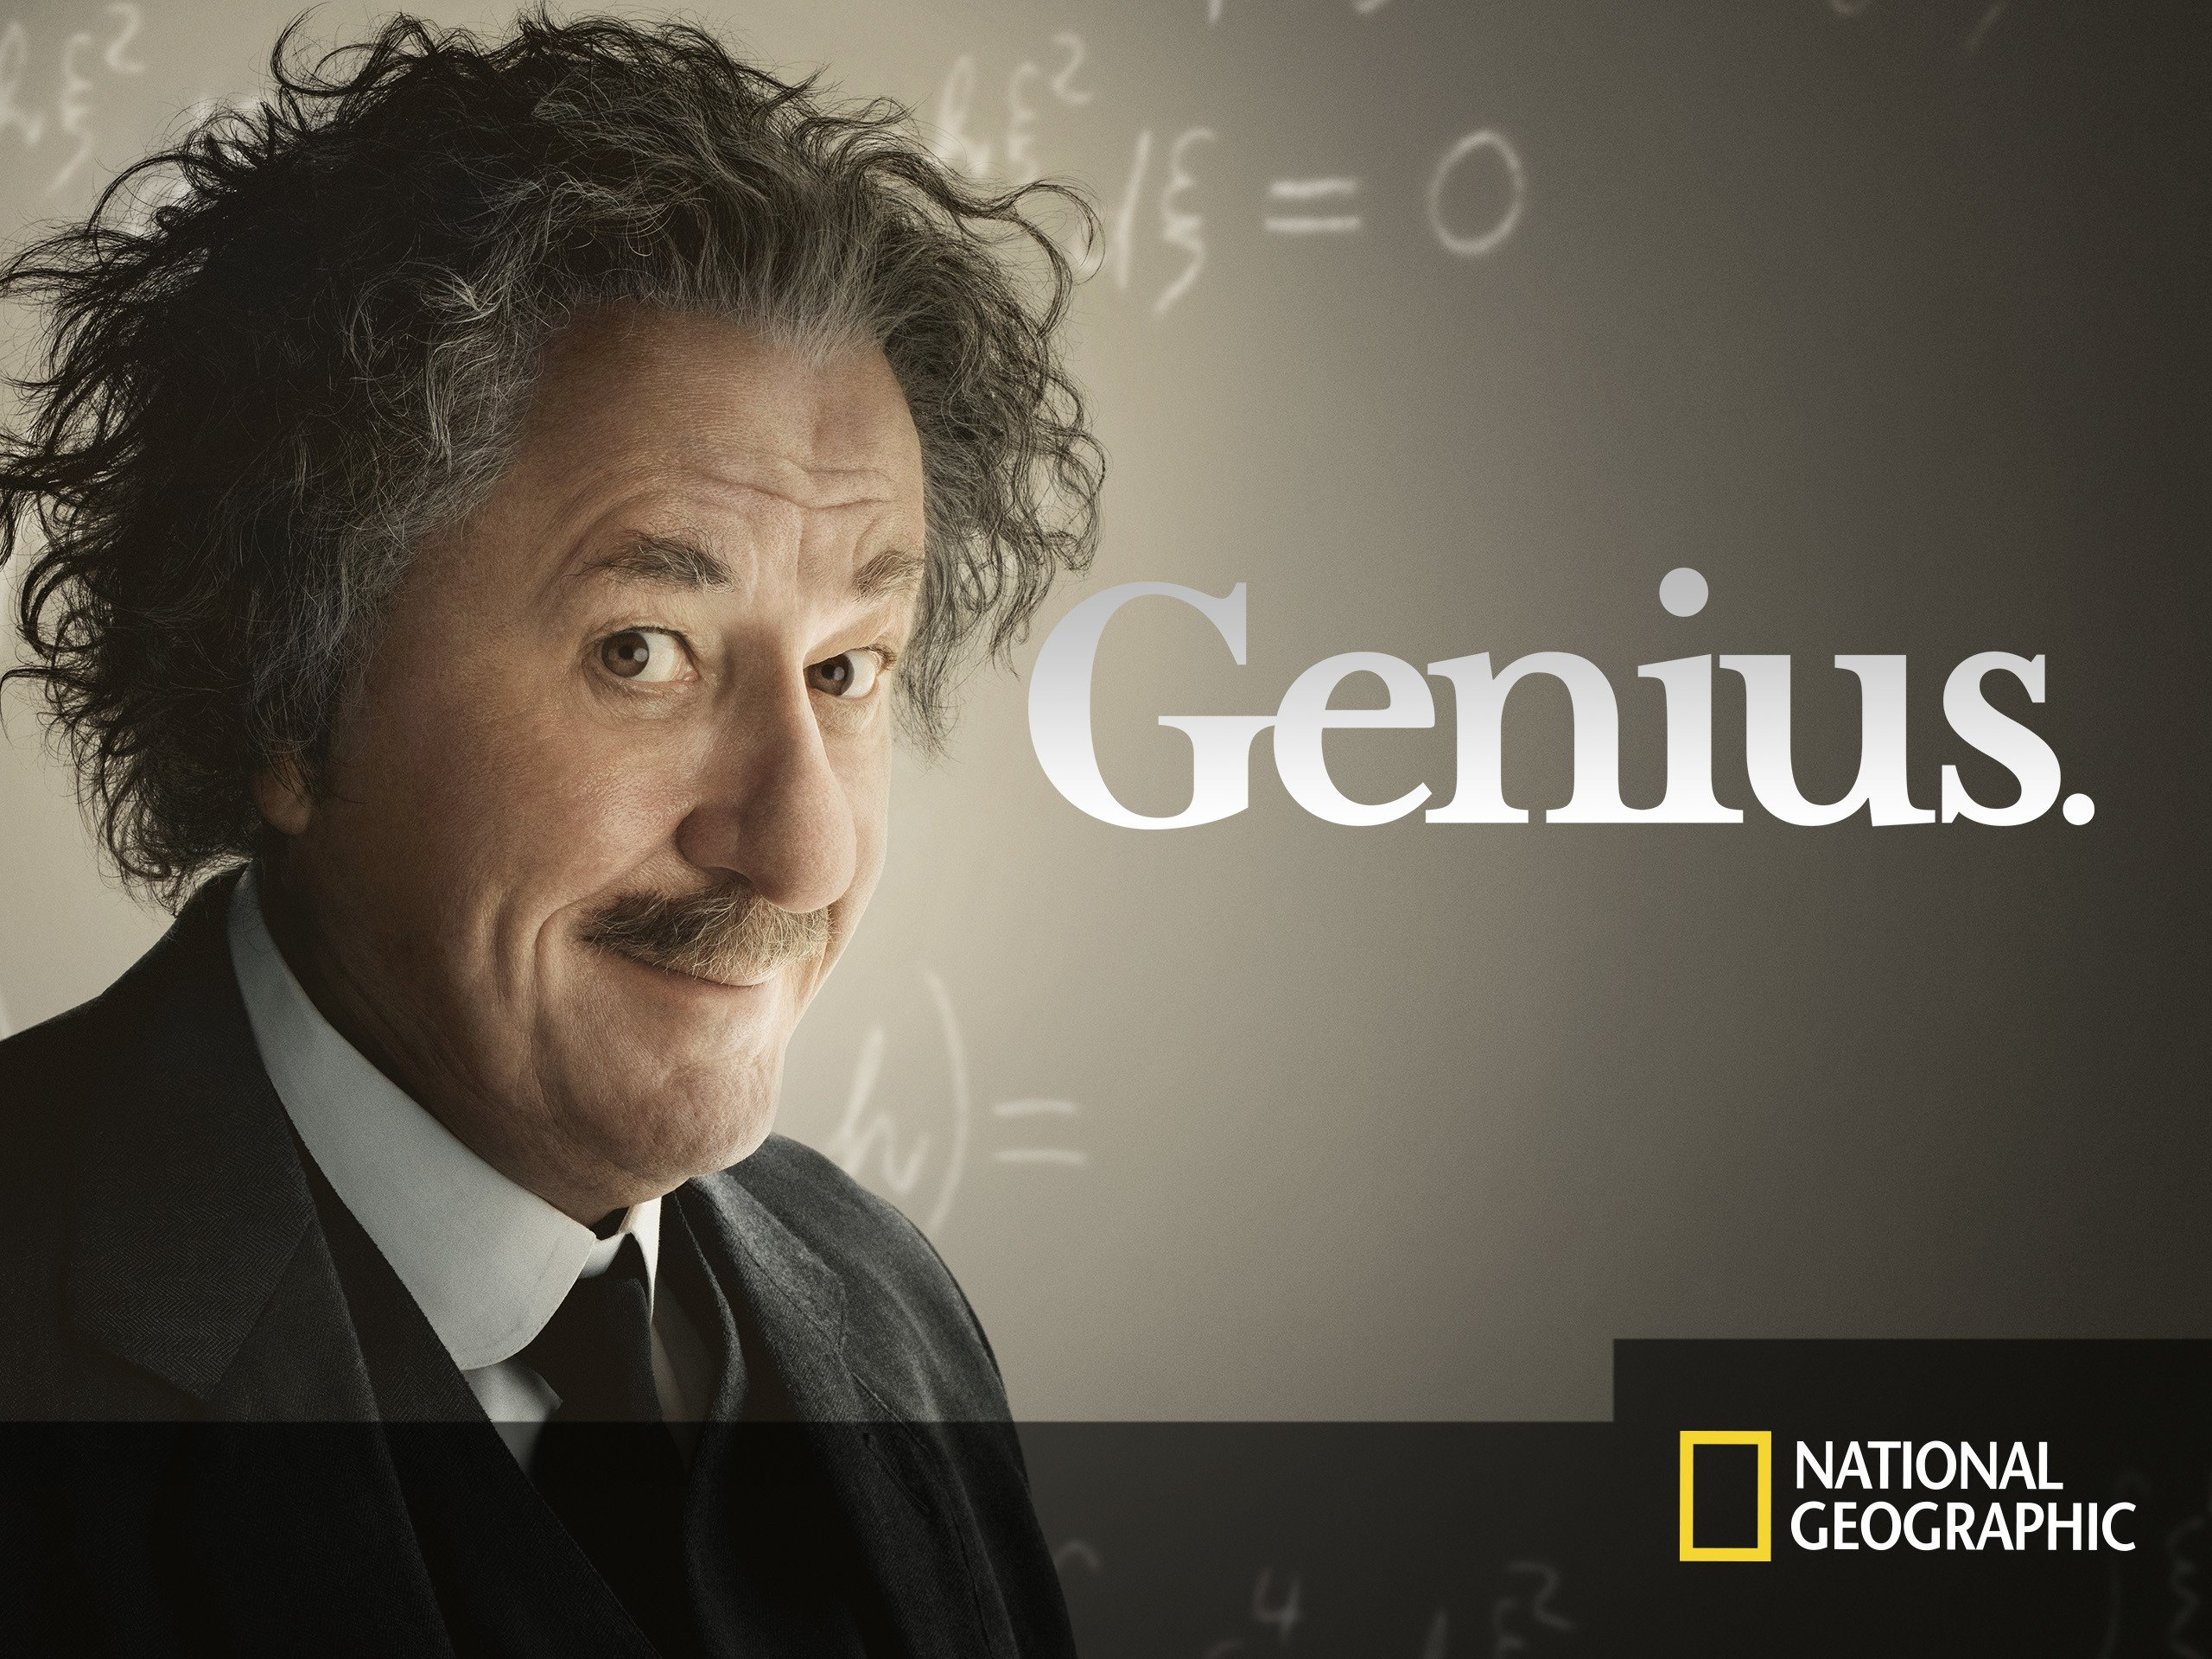 Amazon co uk: Watch Genius, Season 1 | Prime Video